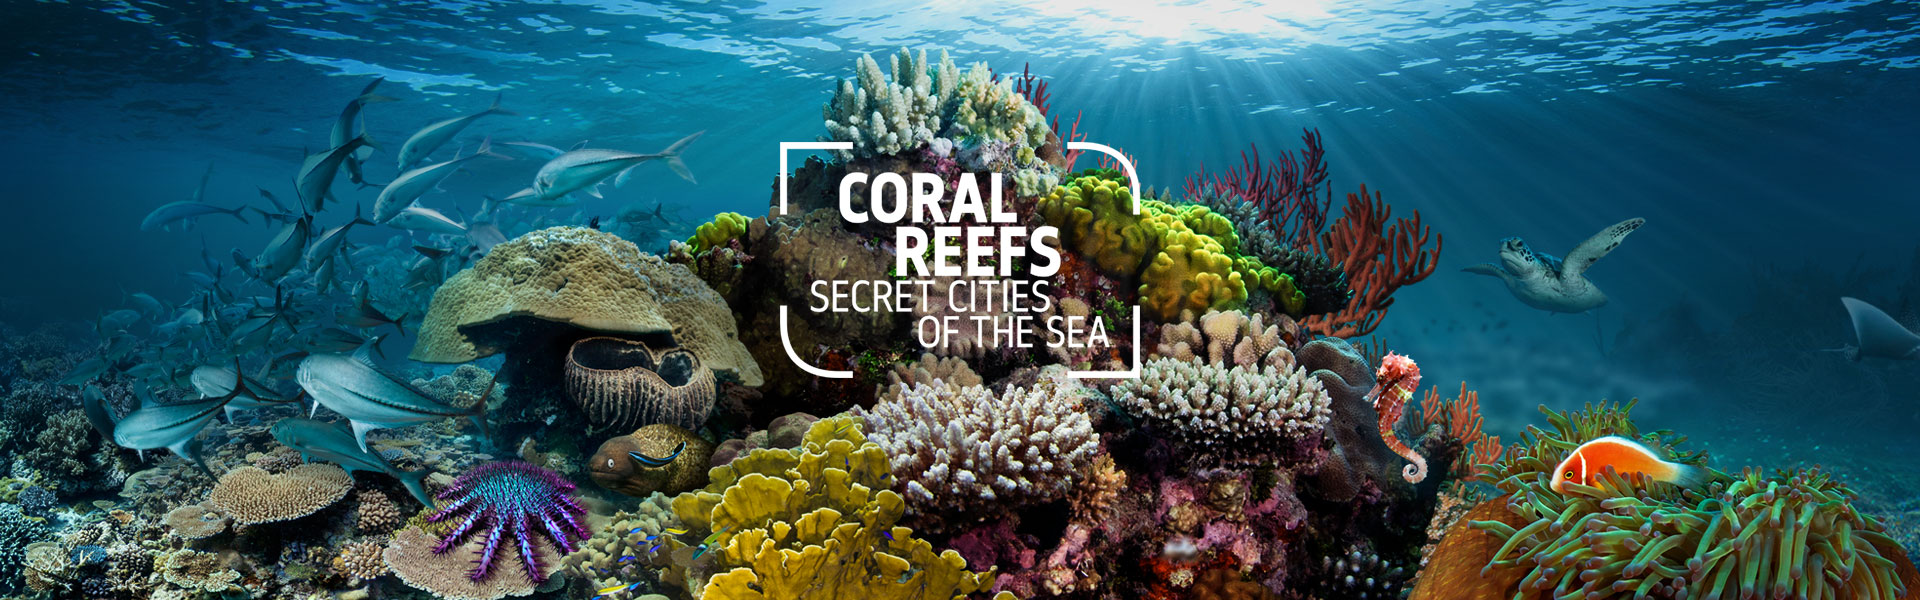 Coral Reefs: Secret Cities of the Sea logo